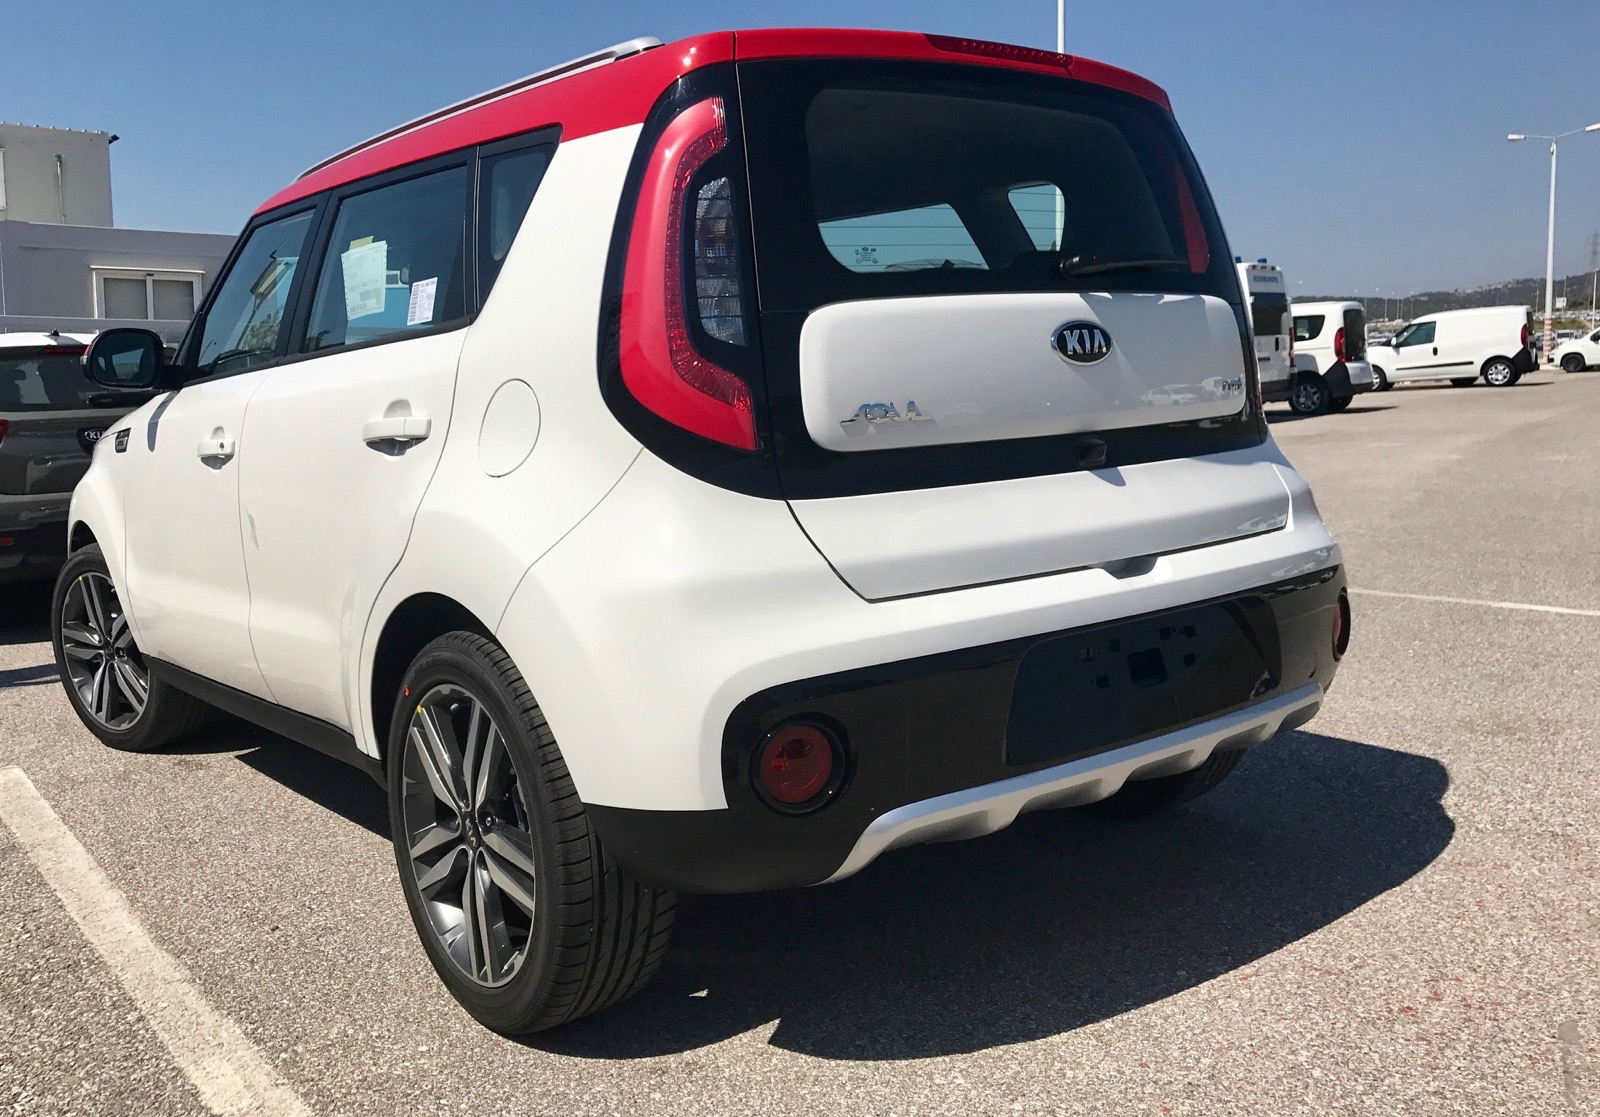 Kia_Soul_Greece_08